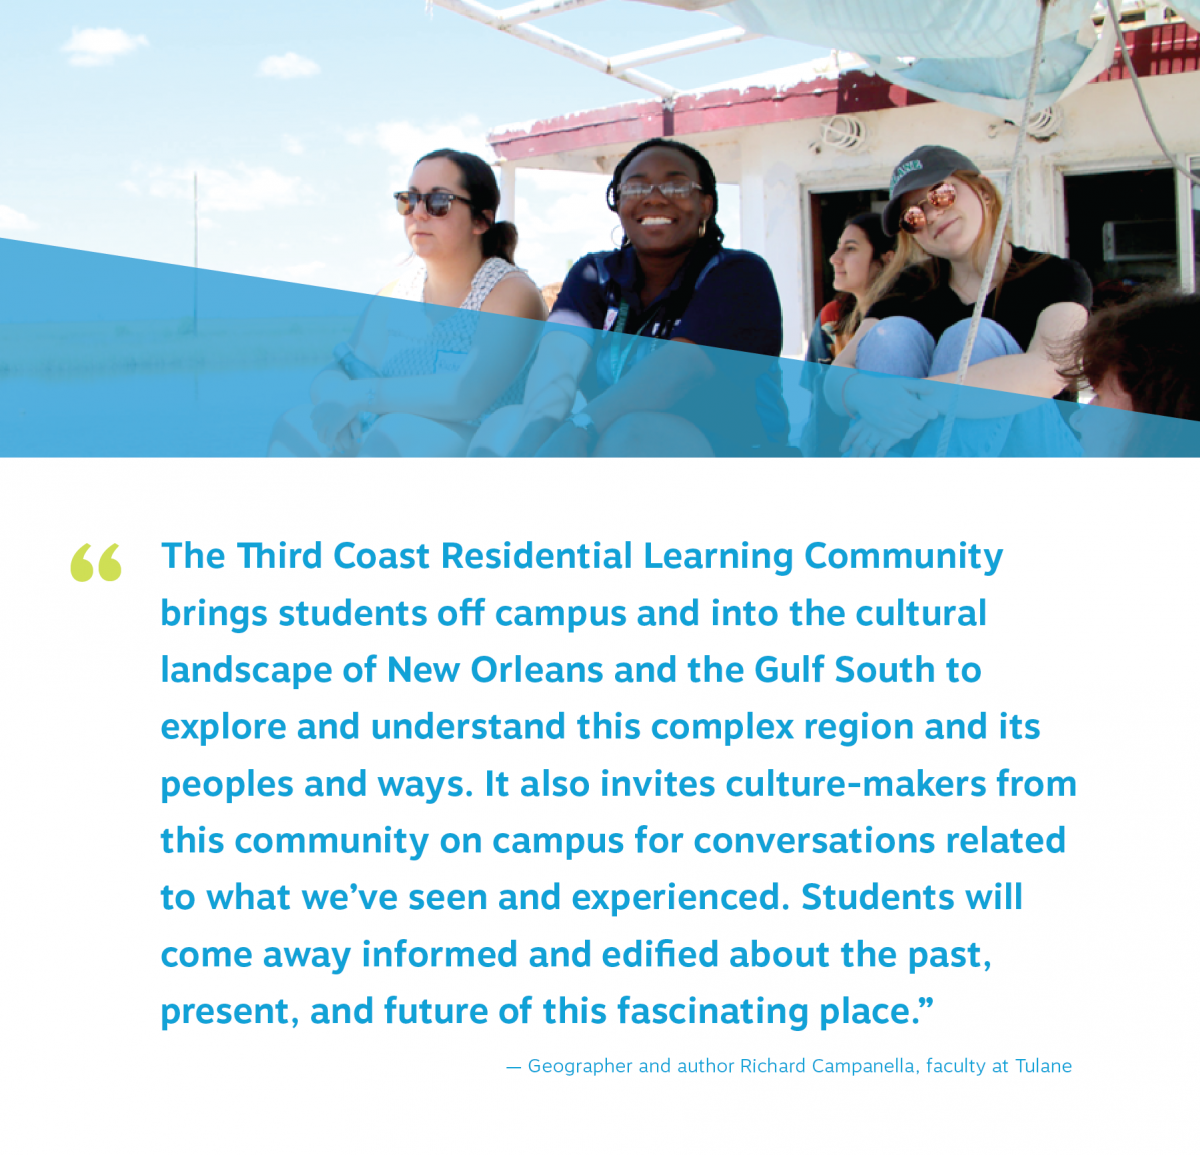 "third coast students smile on a boat tour. quote reads ""The Third Coast Residential Learning Community  brings students off campus and into the cultural  landscape of New Orleans and the Gulf South to  explore and understand this complex region and its  peoples and ways. It also invites culture-makers from  this community on campus for conversations related  to what we've seen and experienced. Students will  come away informed and edified about the past,  present, and future of this fascinating place."" — Geographer and author Richard Campanella, faculty at Tulane"